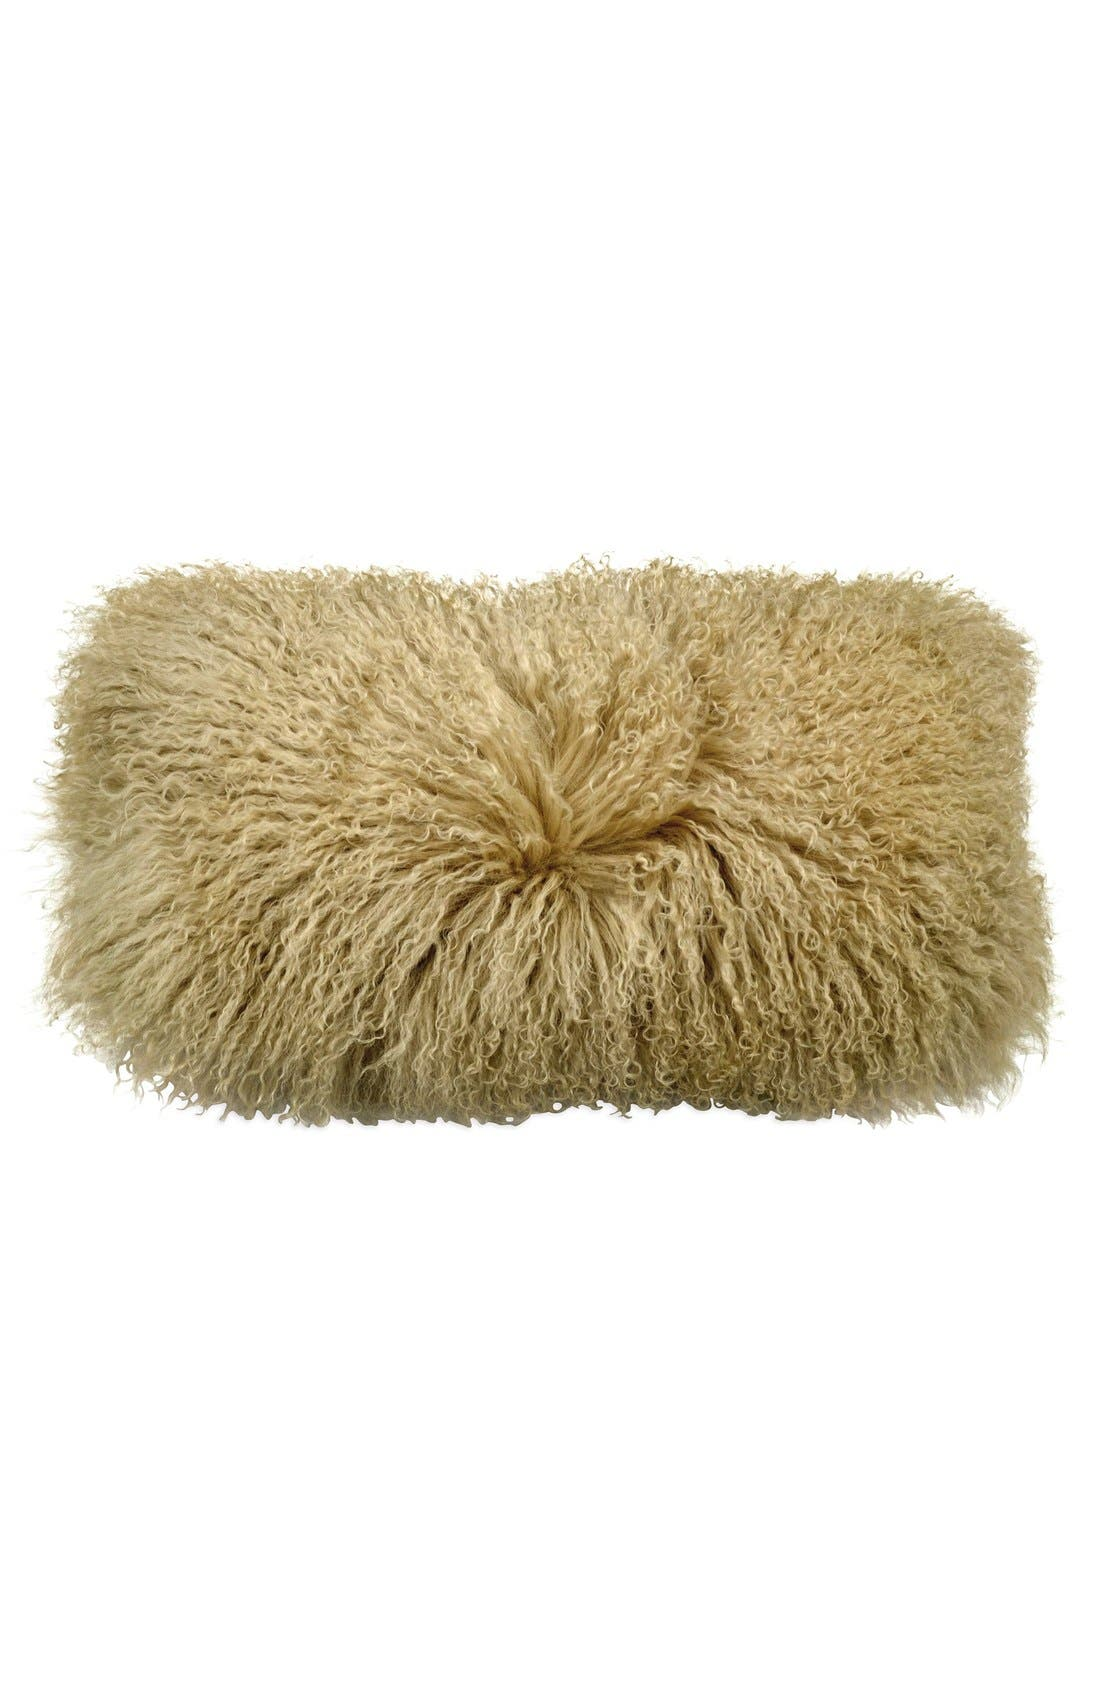 DONNA KARAN NEW YORK Flokati Genuine Shearling Pillow